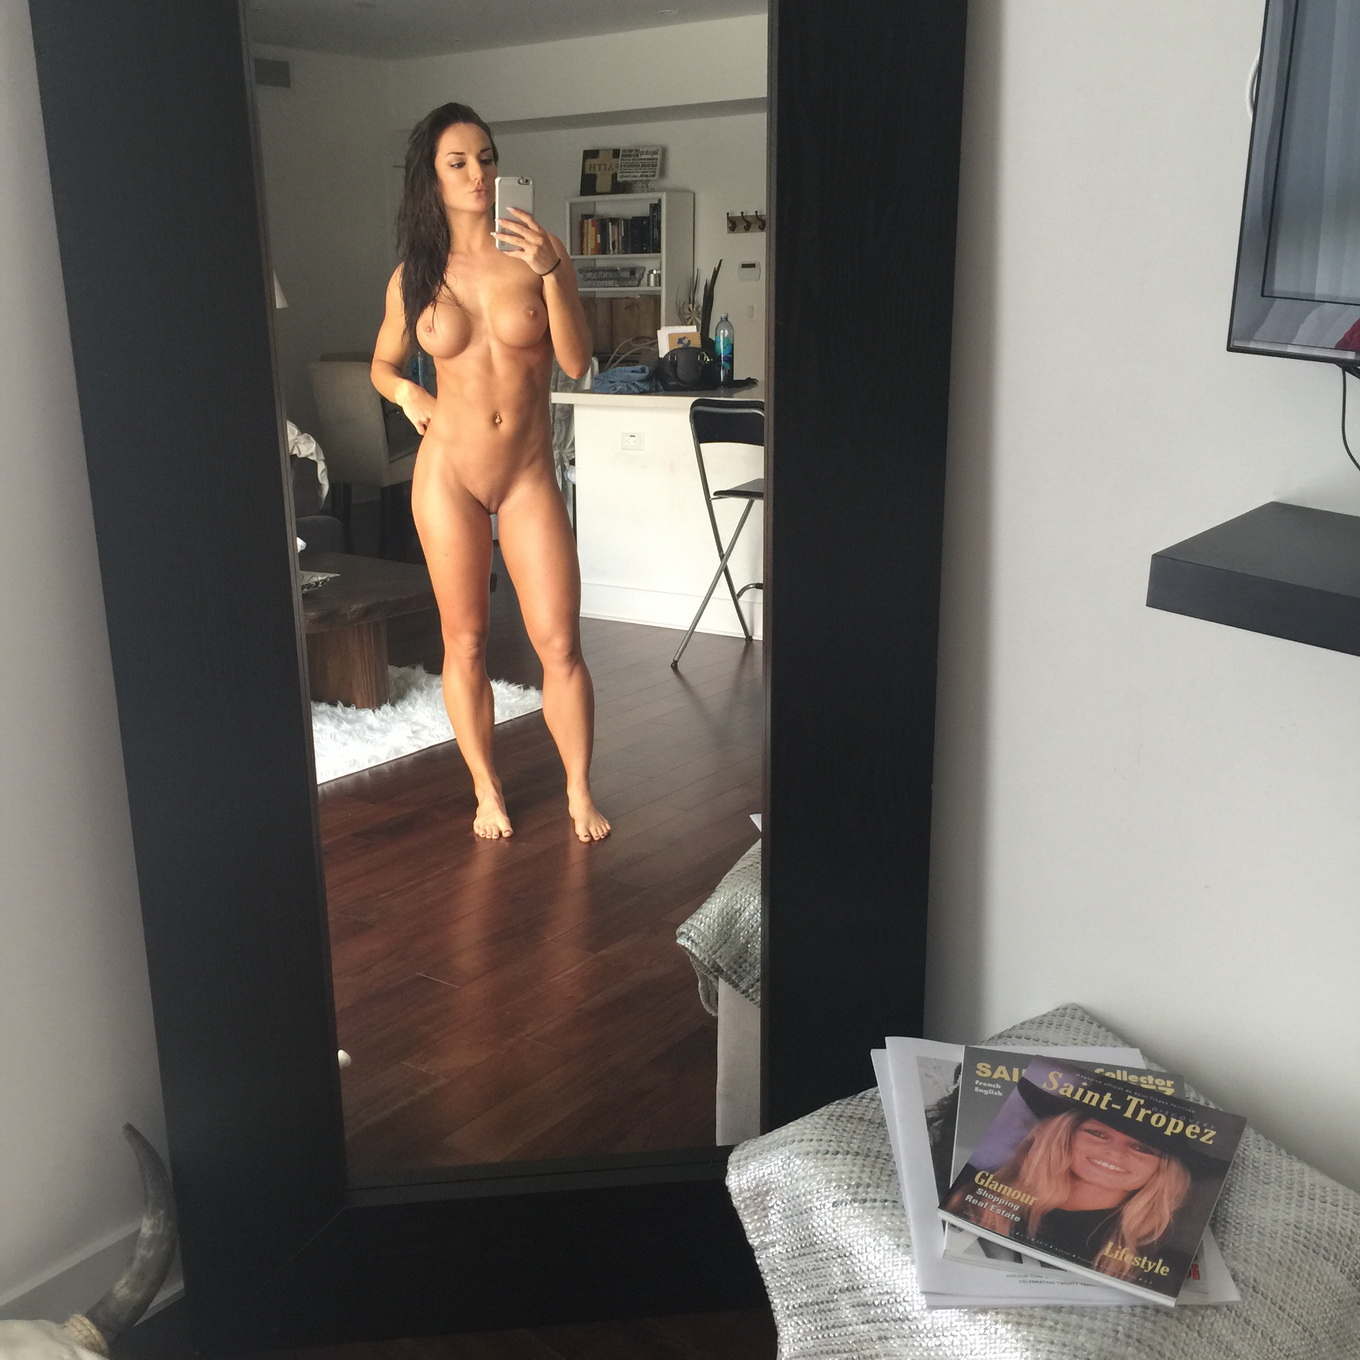 whitney johns taking nude selfies amp blowjob   private leaked photos